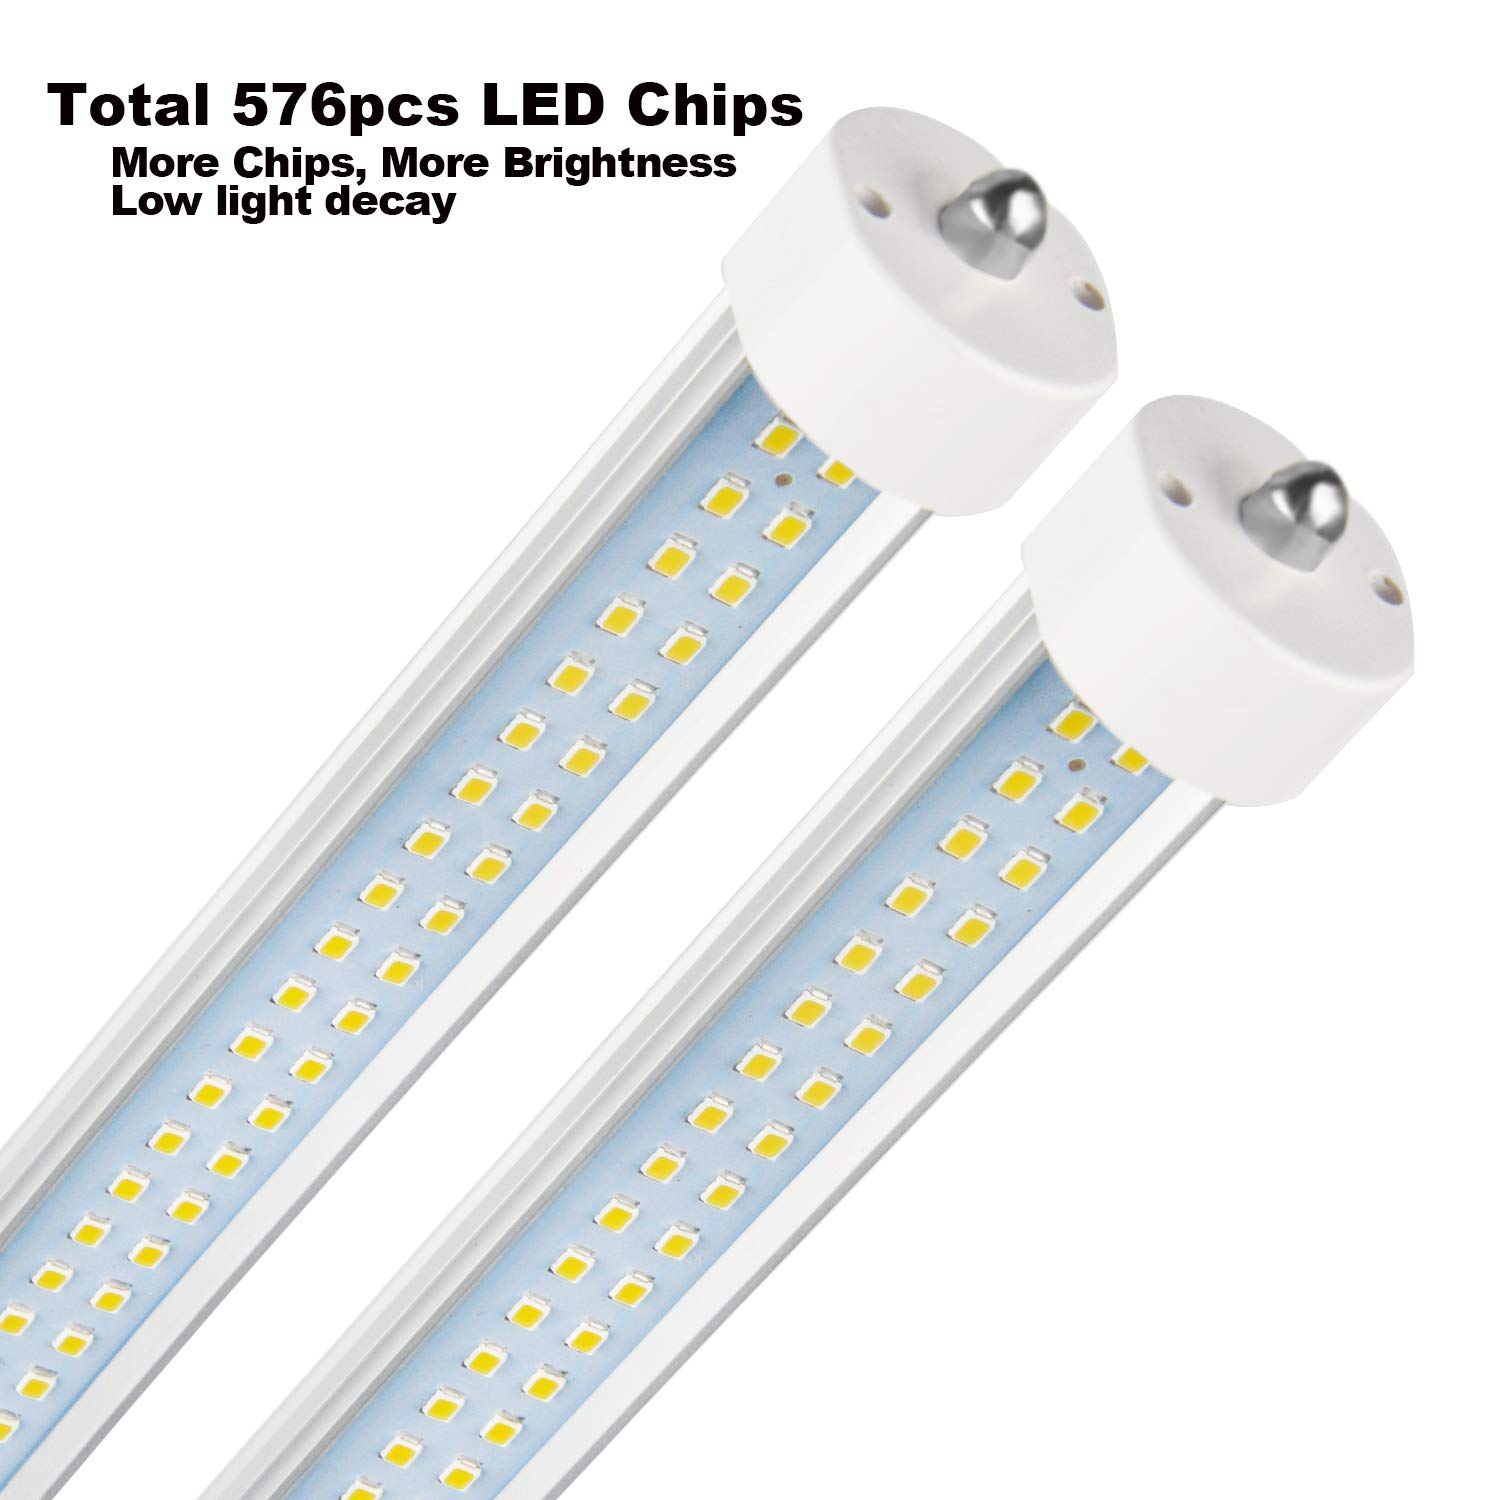 25-Pack, LED tubo de luz, 8 ft 90 W forma de V y doble cara integrado bombilla lámpara, funciona sin T8 balasto, Plug and Play, claro/leche, lente, ...